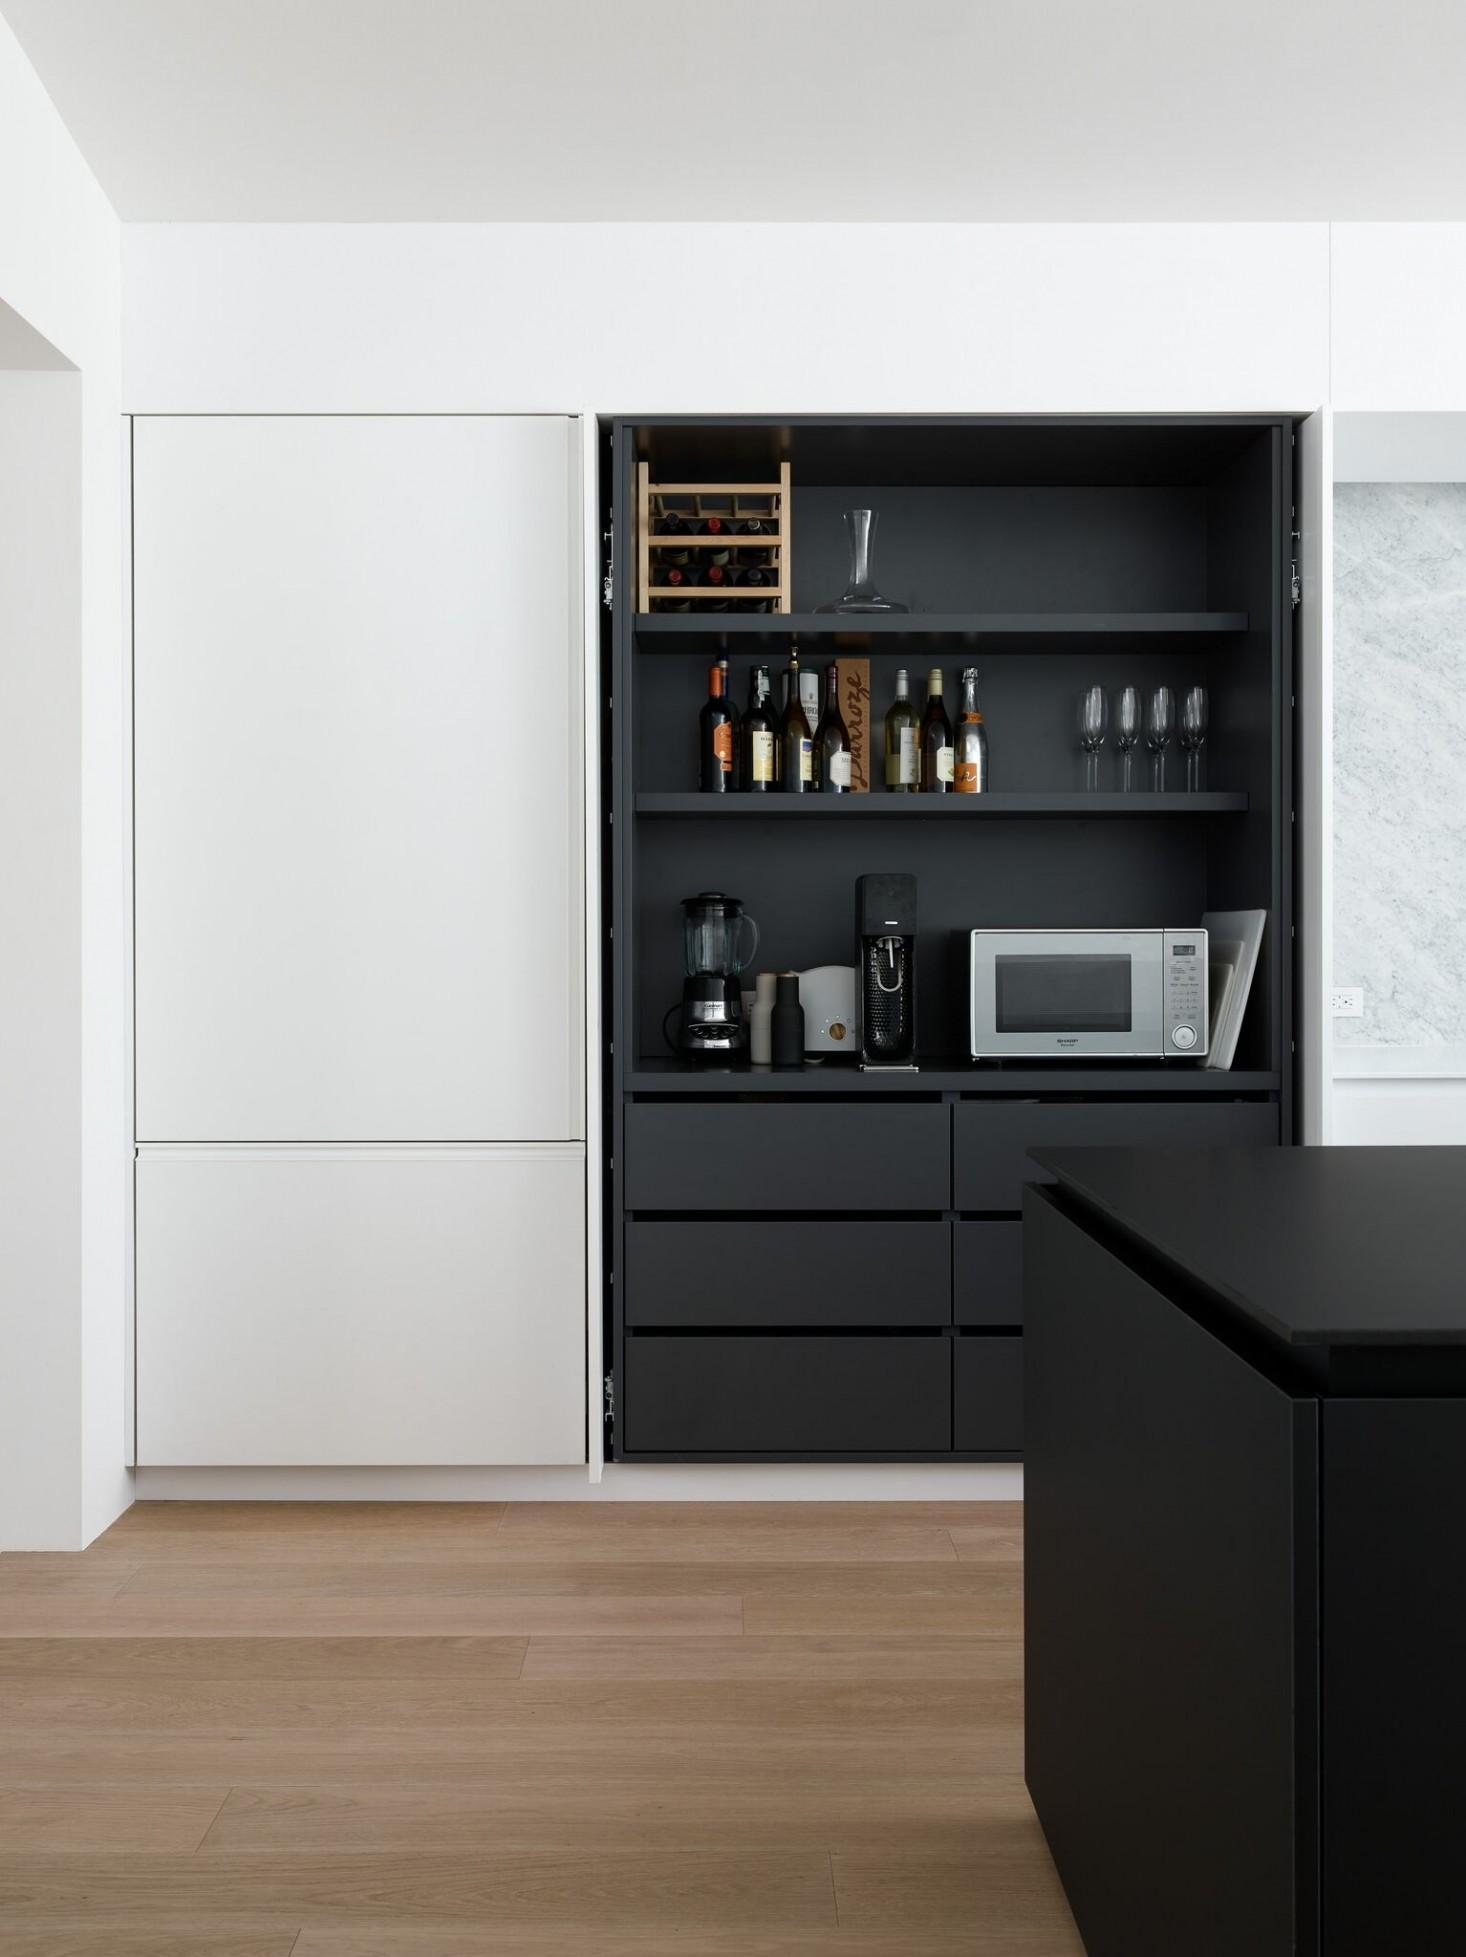 Disappearing Act Minimalist Hidden Kitchens Remodelista